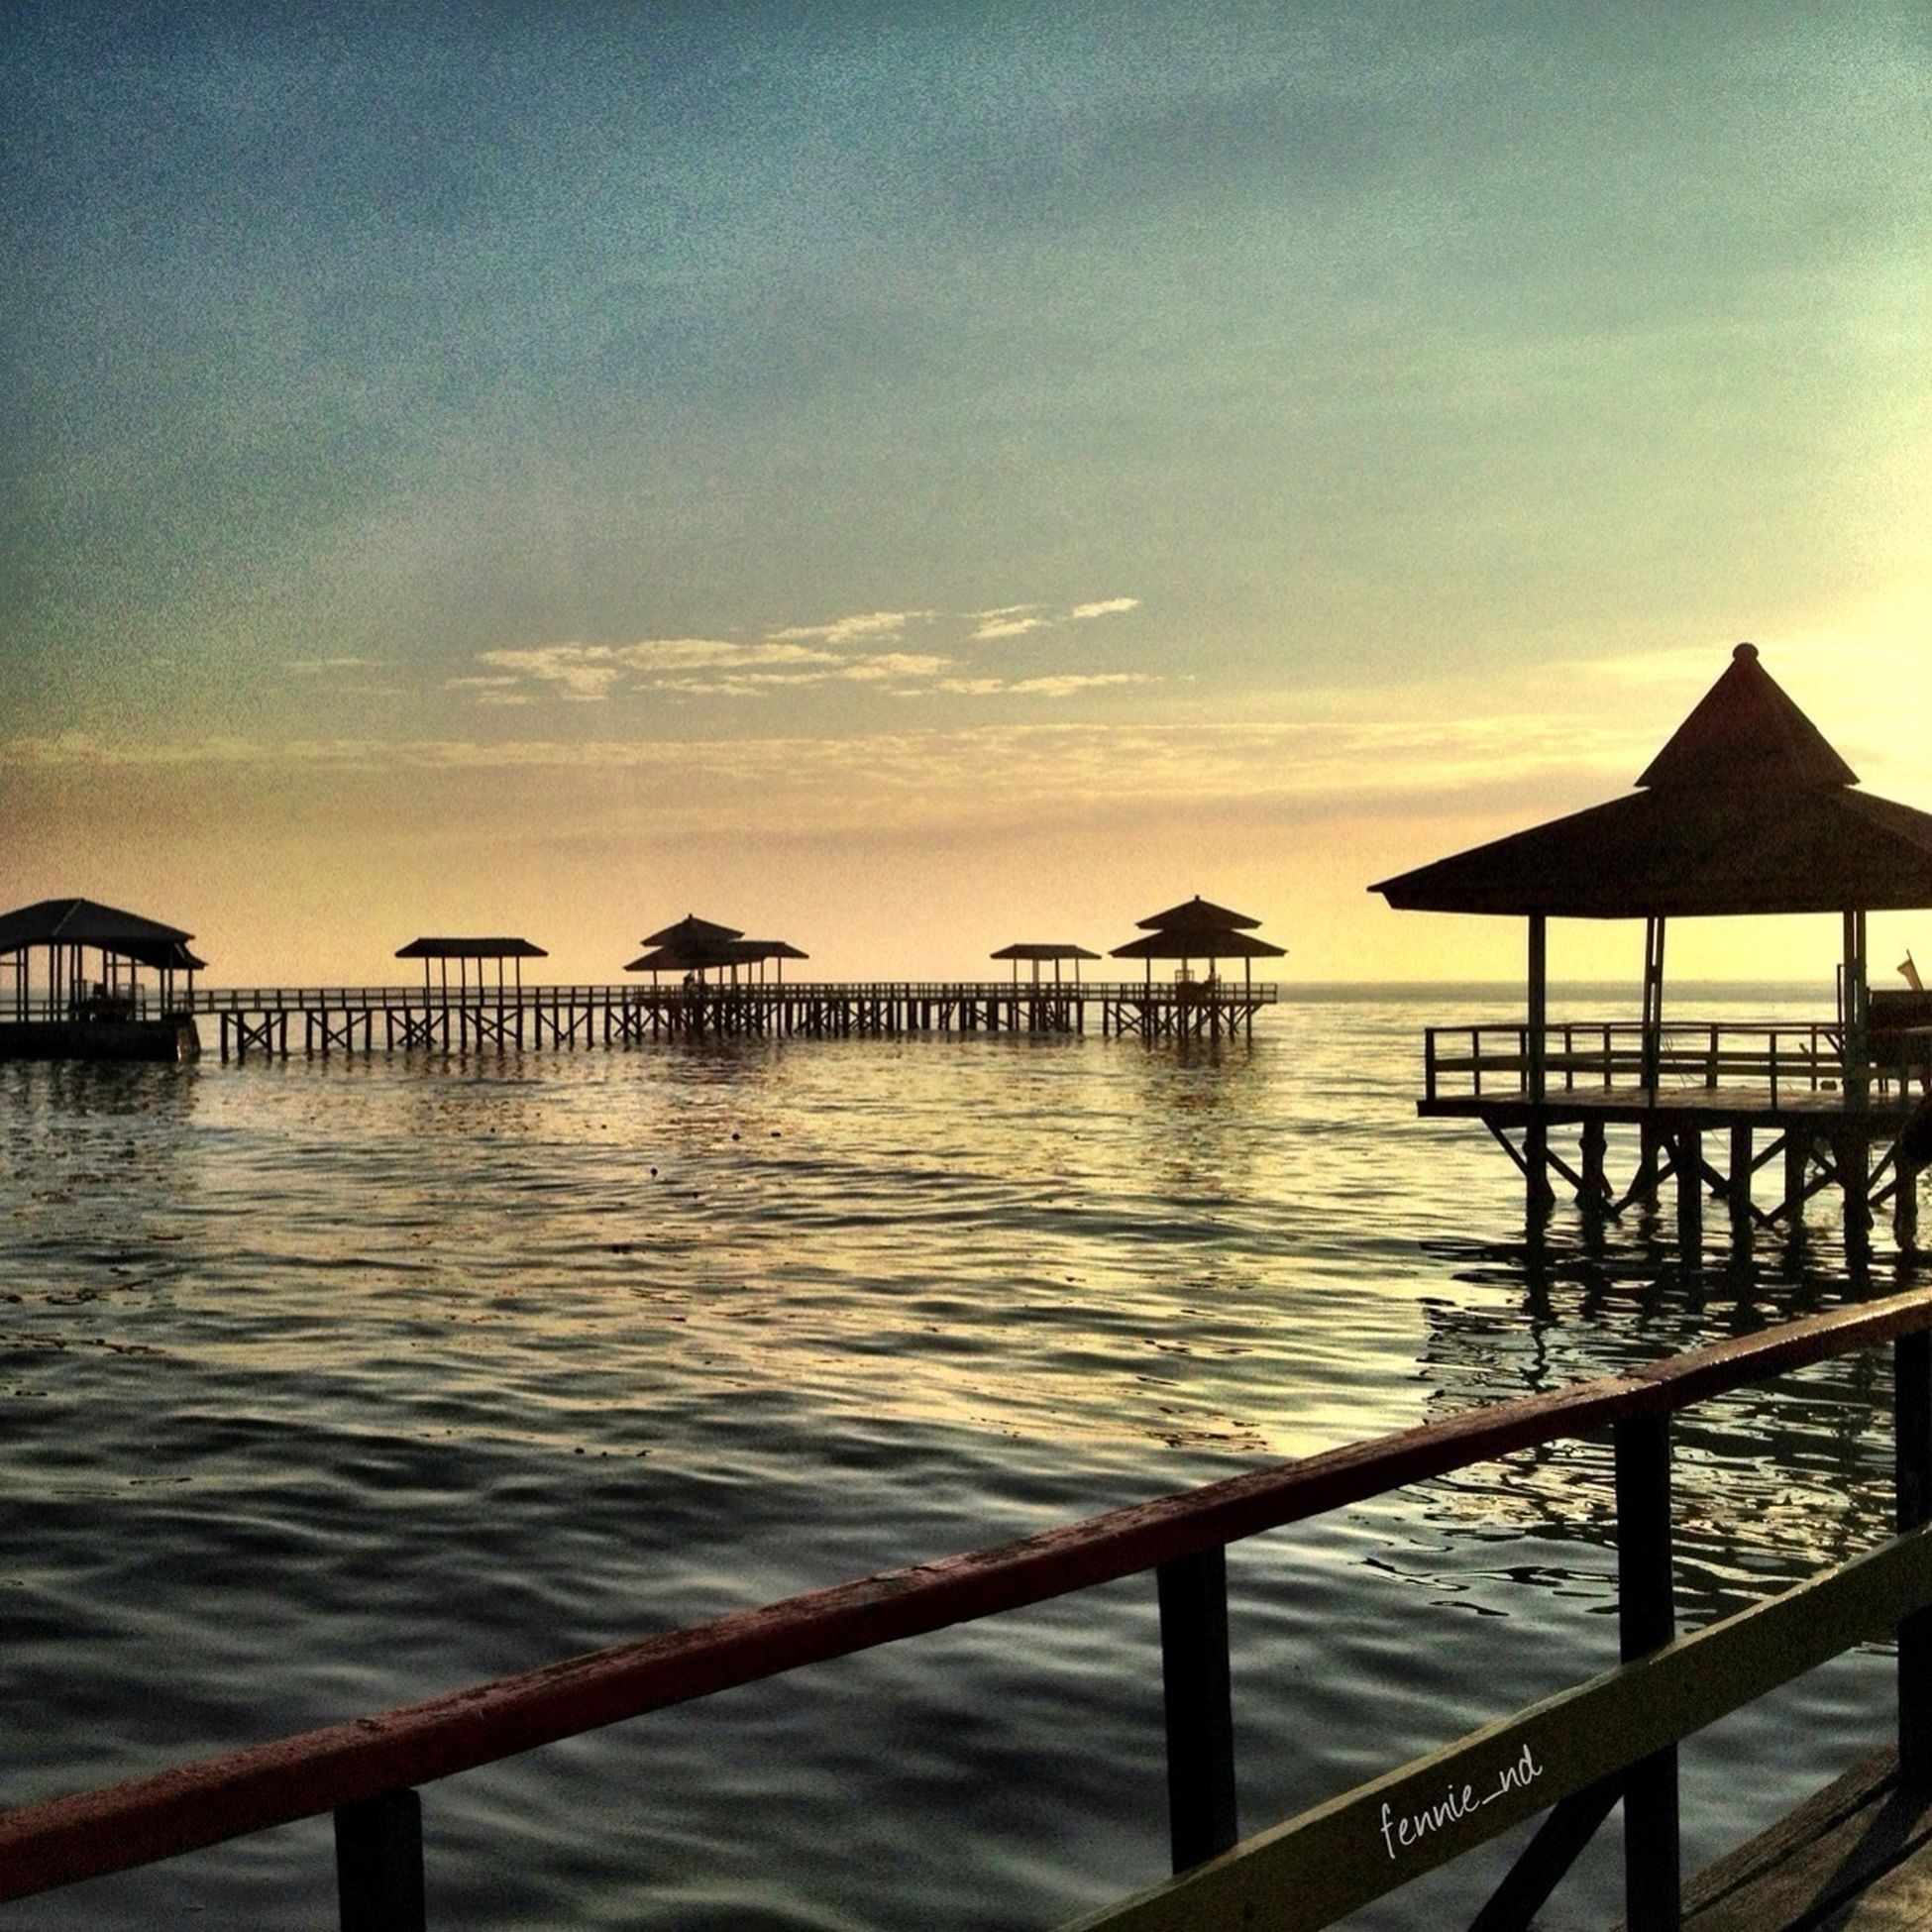 pier, water, railing, bridge, built structure, connection, river, bridge - man made structure, architecture, outdoors, sea, jetty, wood, waterfront, wood - material, engineering, connection, distant, tropical climate, tourism